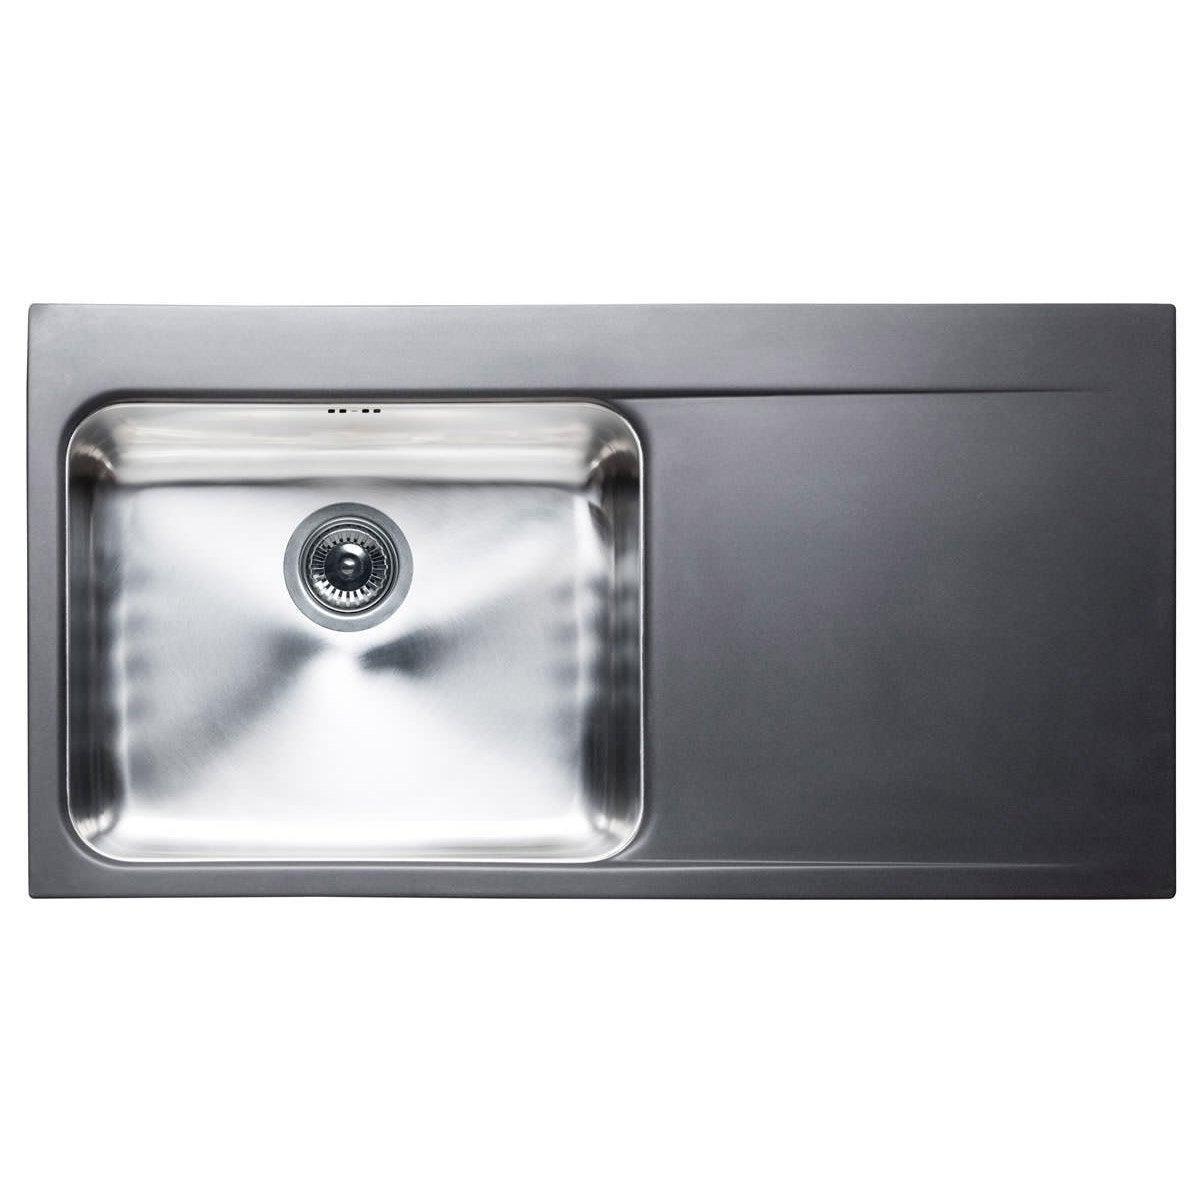 Evier encastrer inox noir arezzo 1 grand bac avec for Grand evier inox